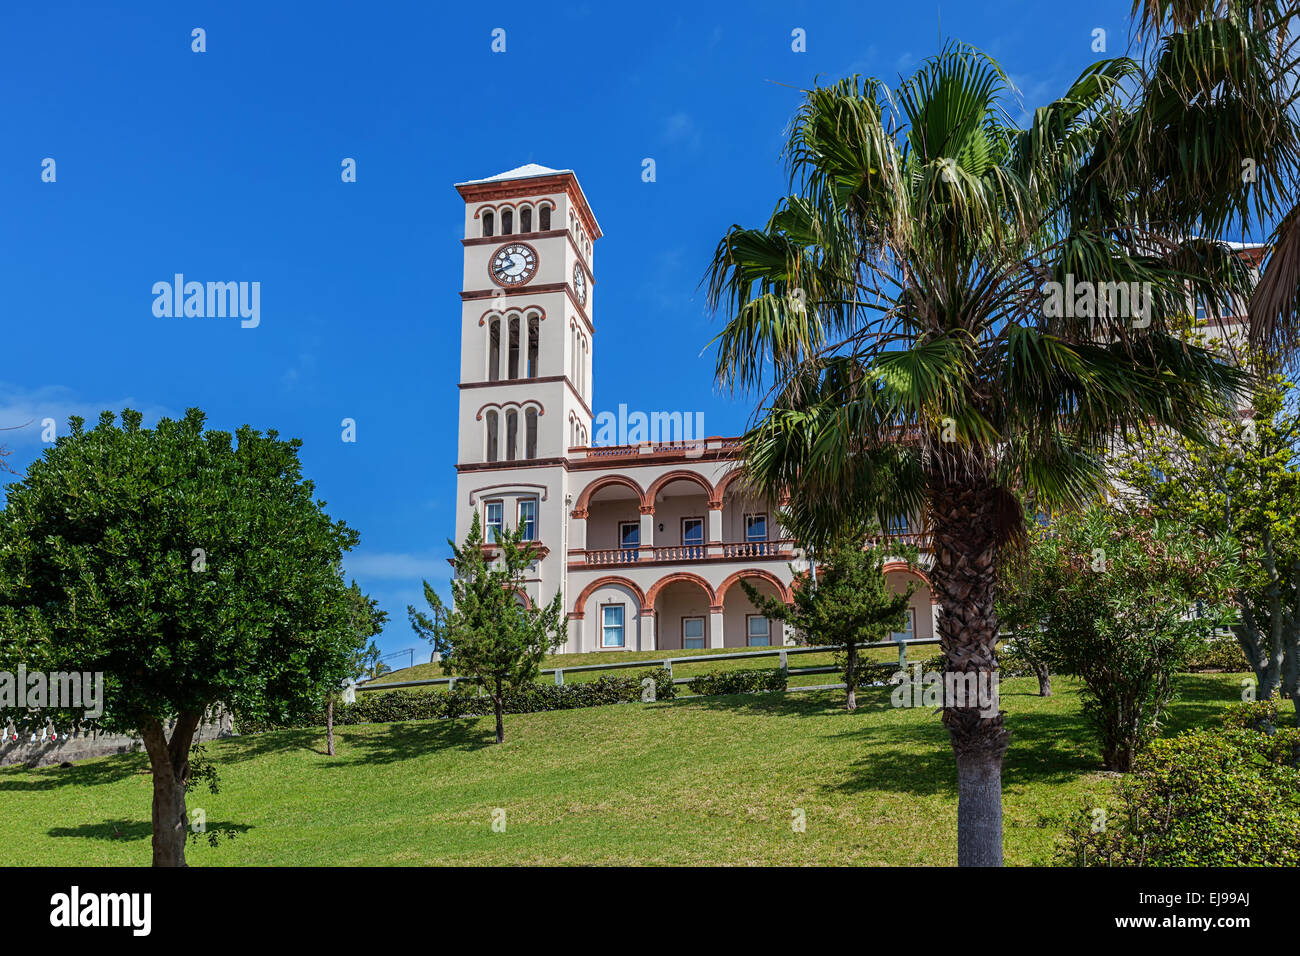 View of the Sessions House in Hamilton, Bermuda. - Stock Image